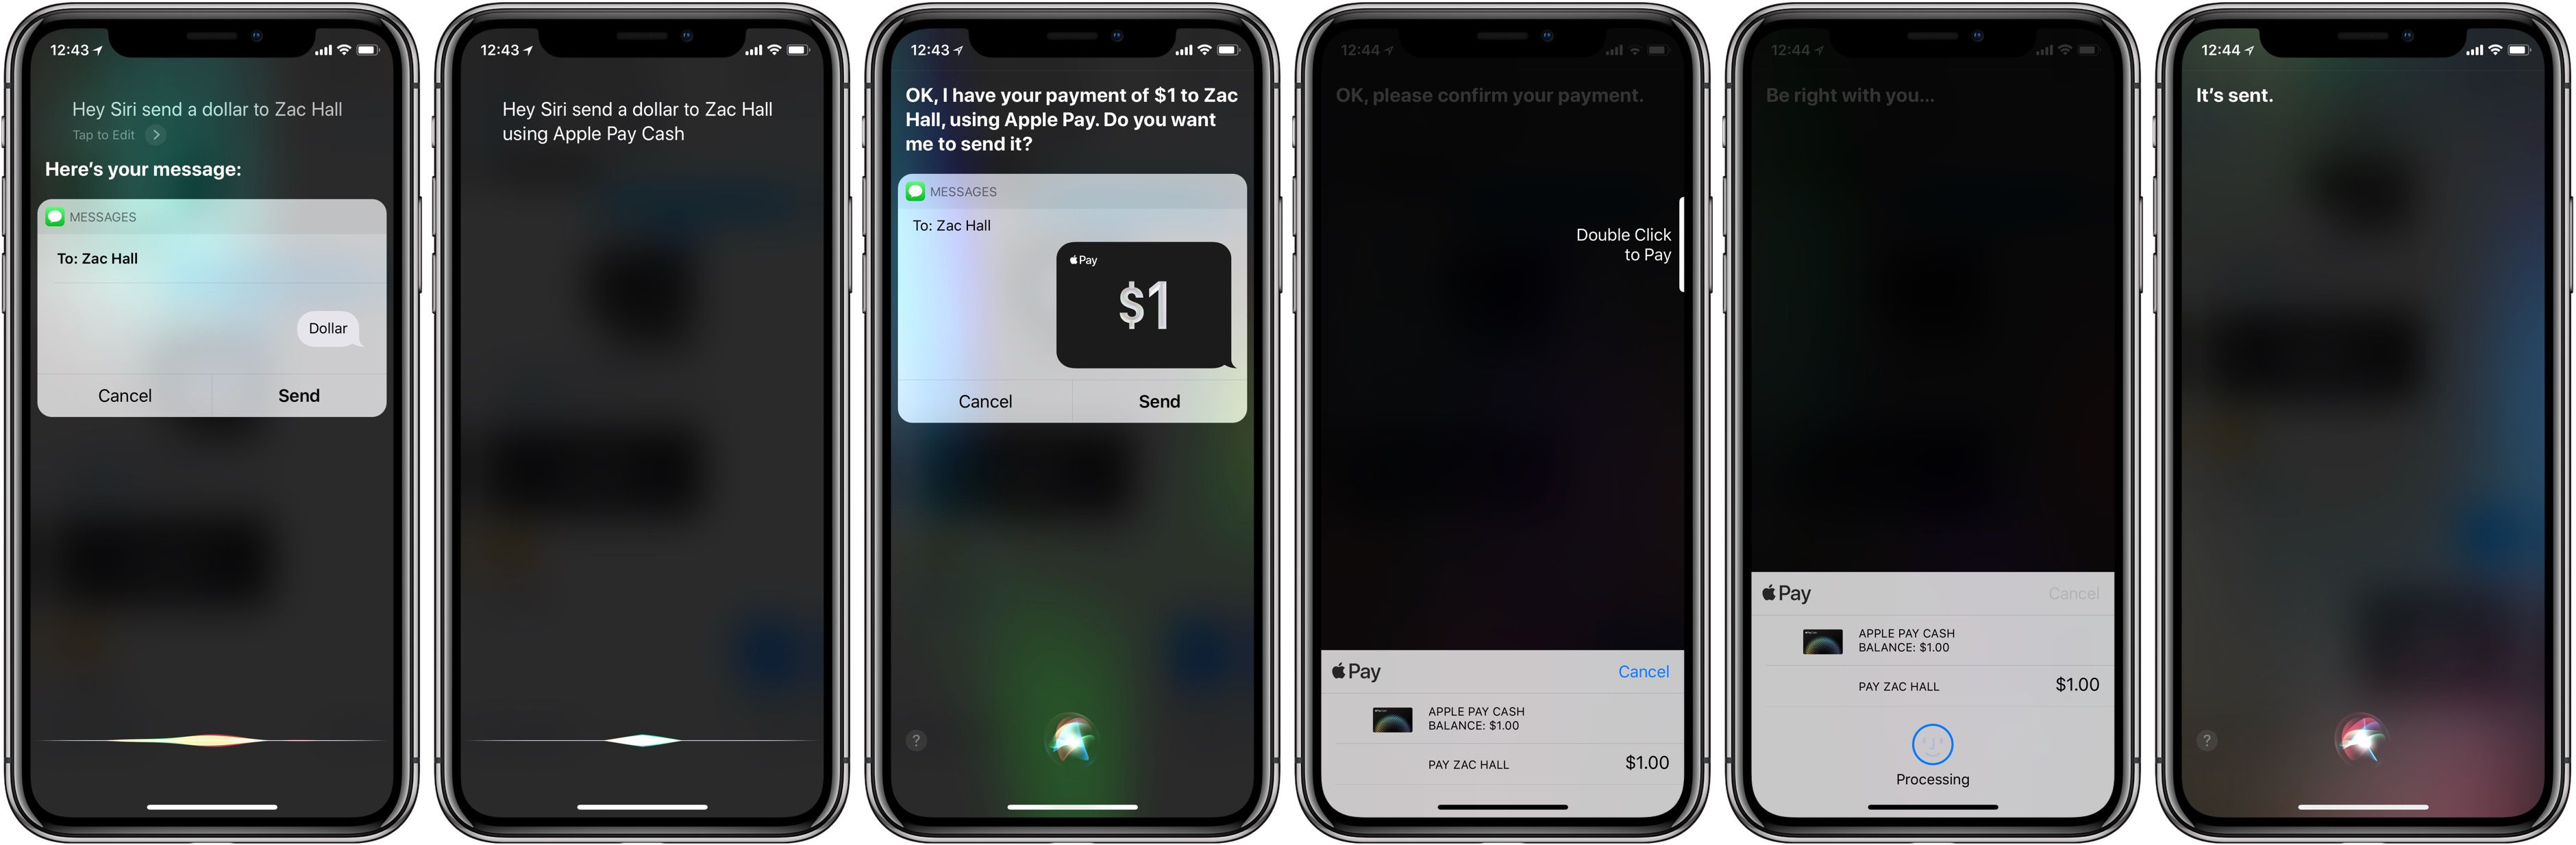 Apple Pay cash walkthrough 8